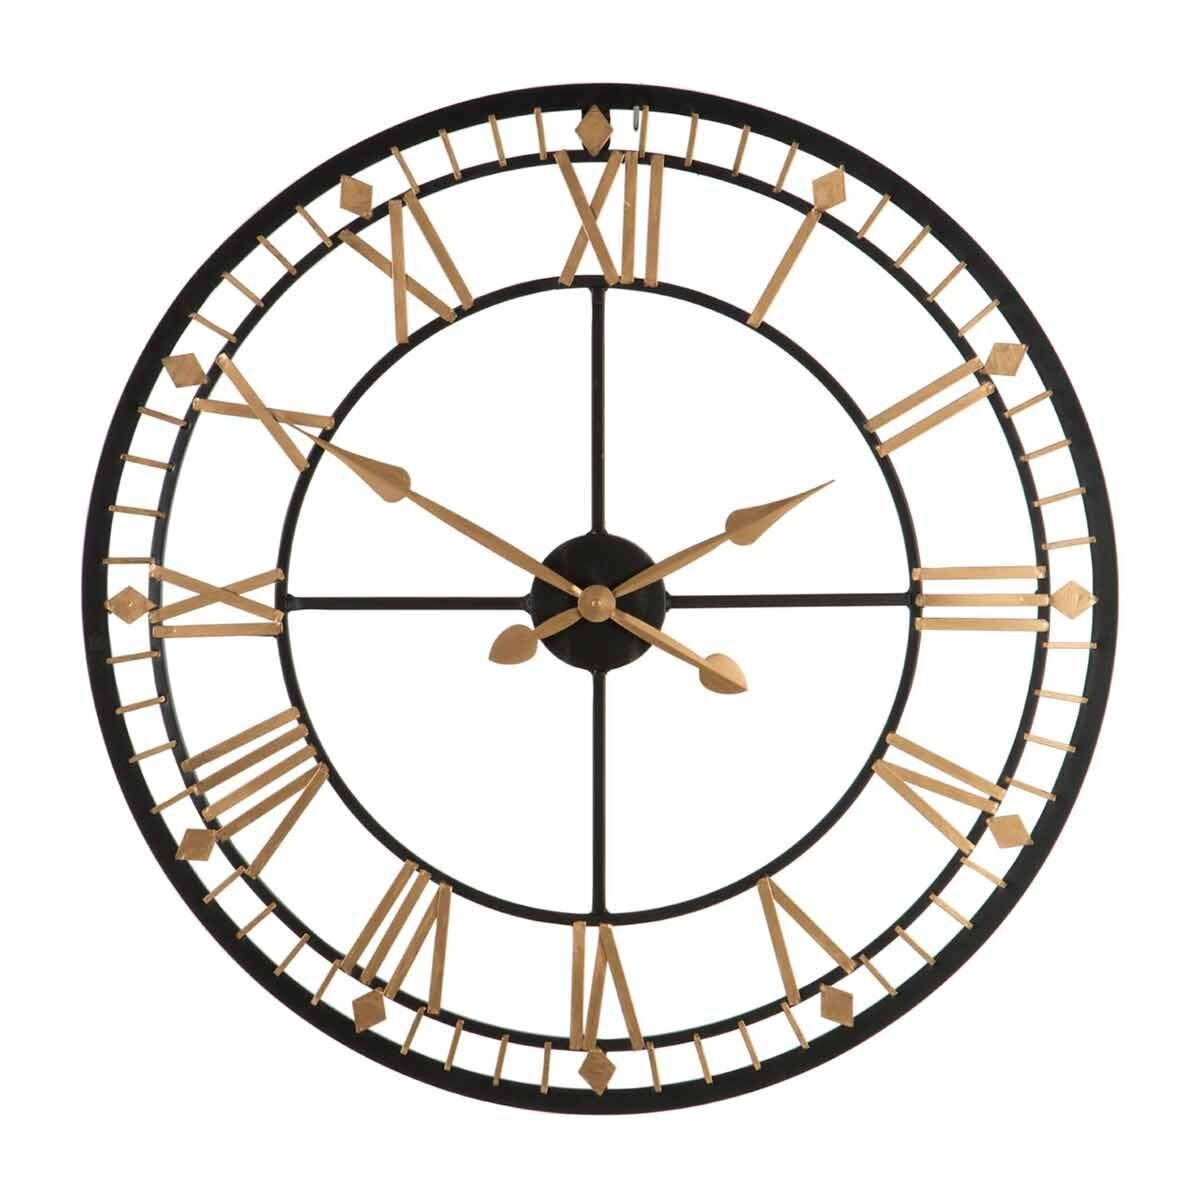 Premier Housewares Metal Wall Clock 80cm Black and Gold